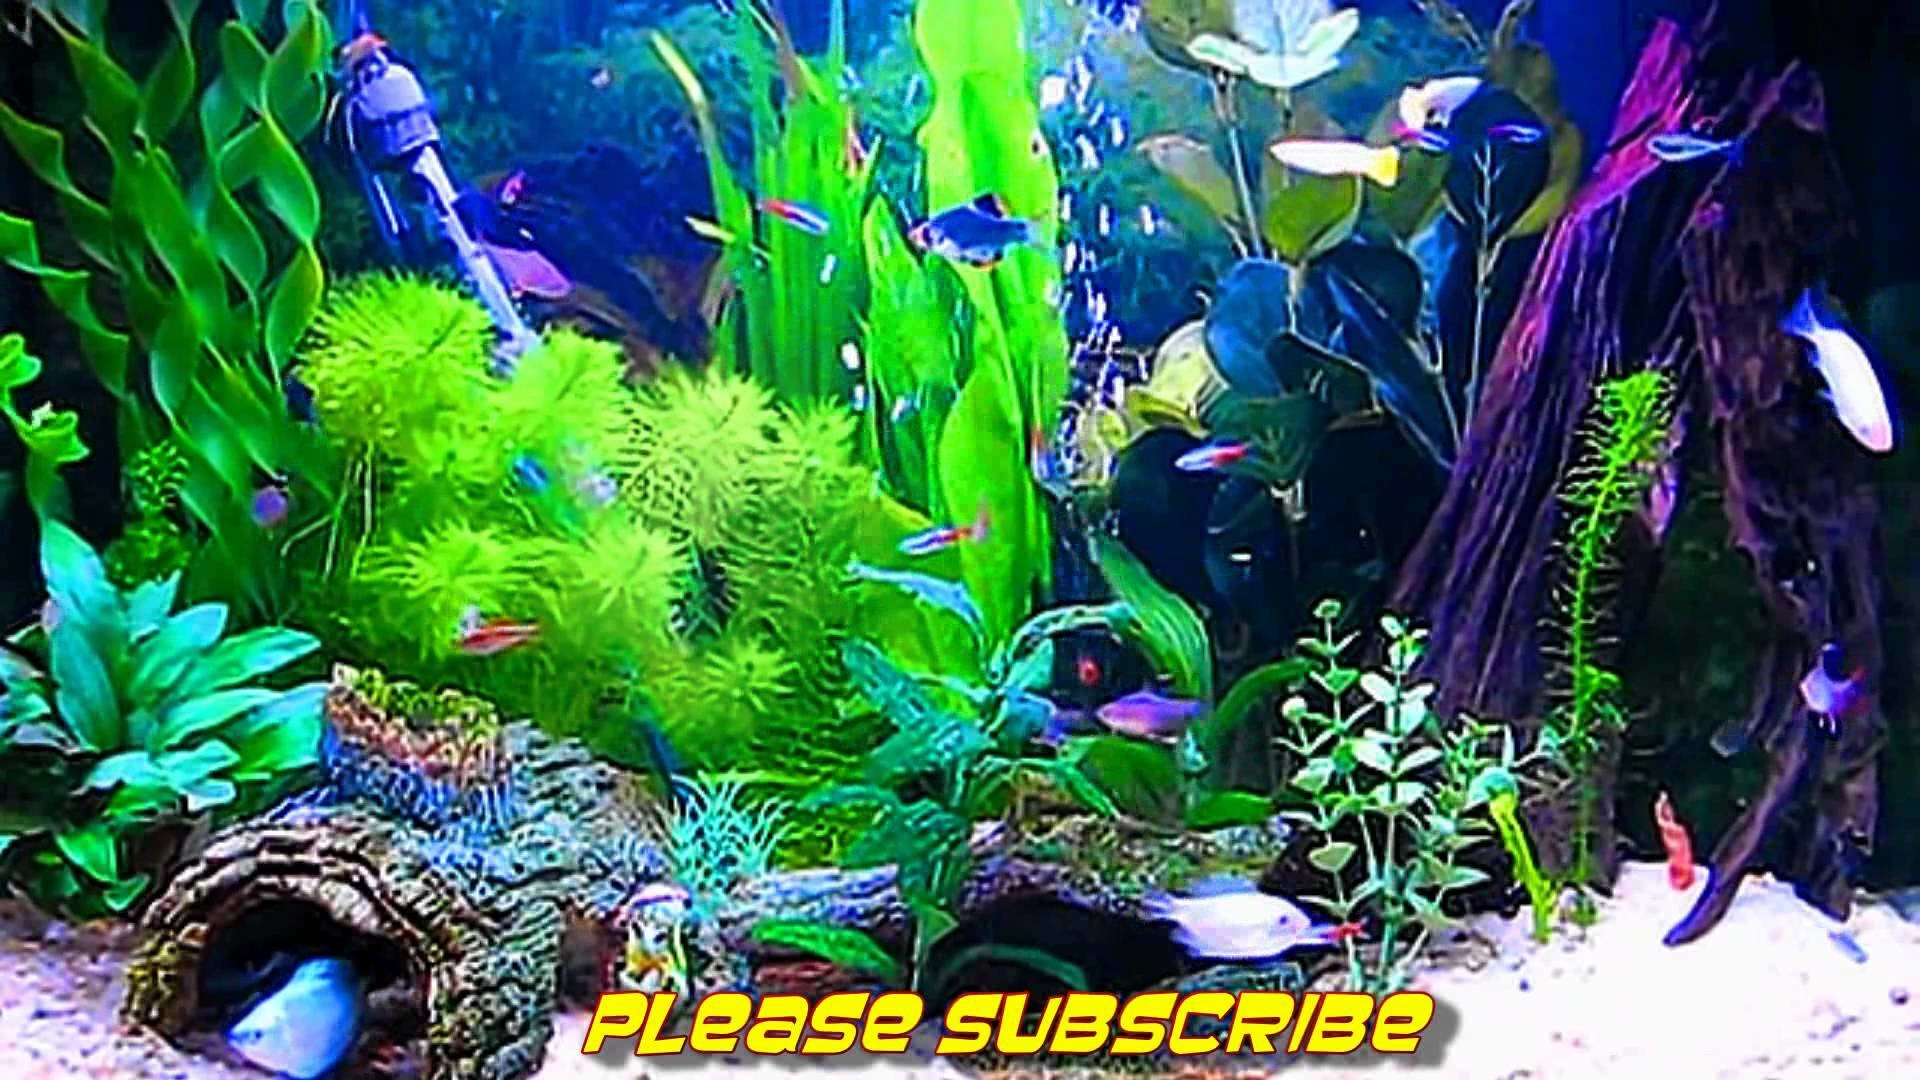 Download Live Aquarium Wallpaper For Mobile Gallery   Free Wallpapers    Pinterest   Wallpaper and Wallpaper gallery